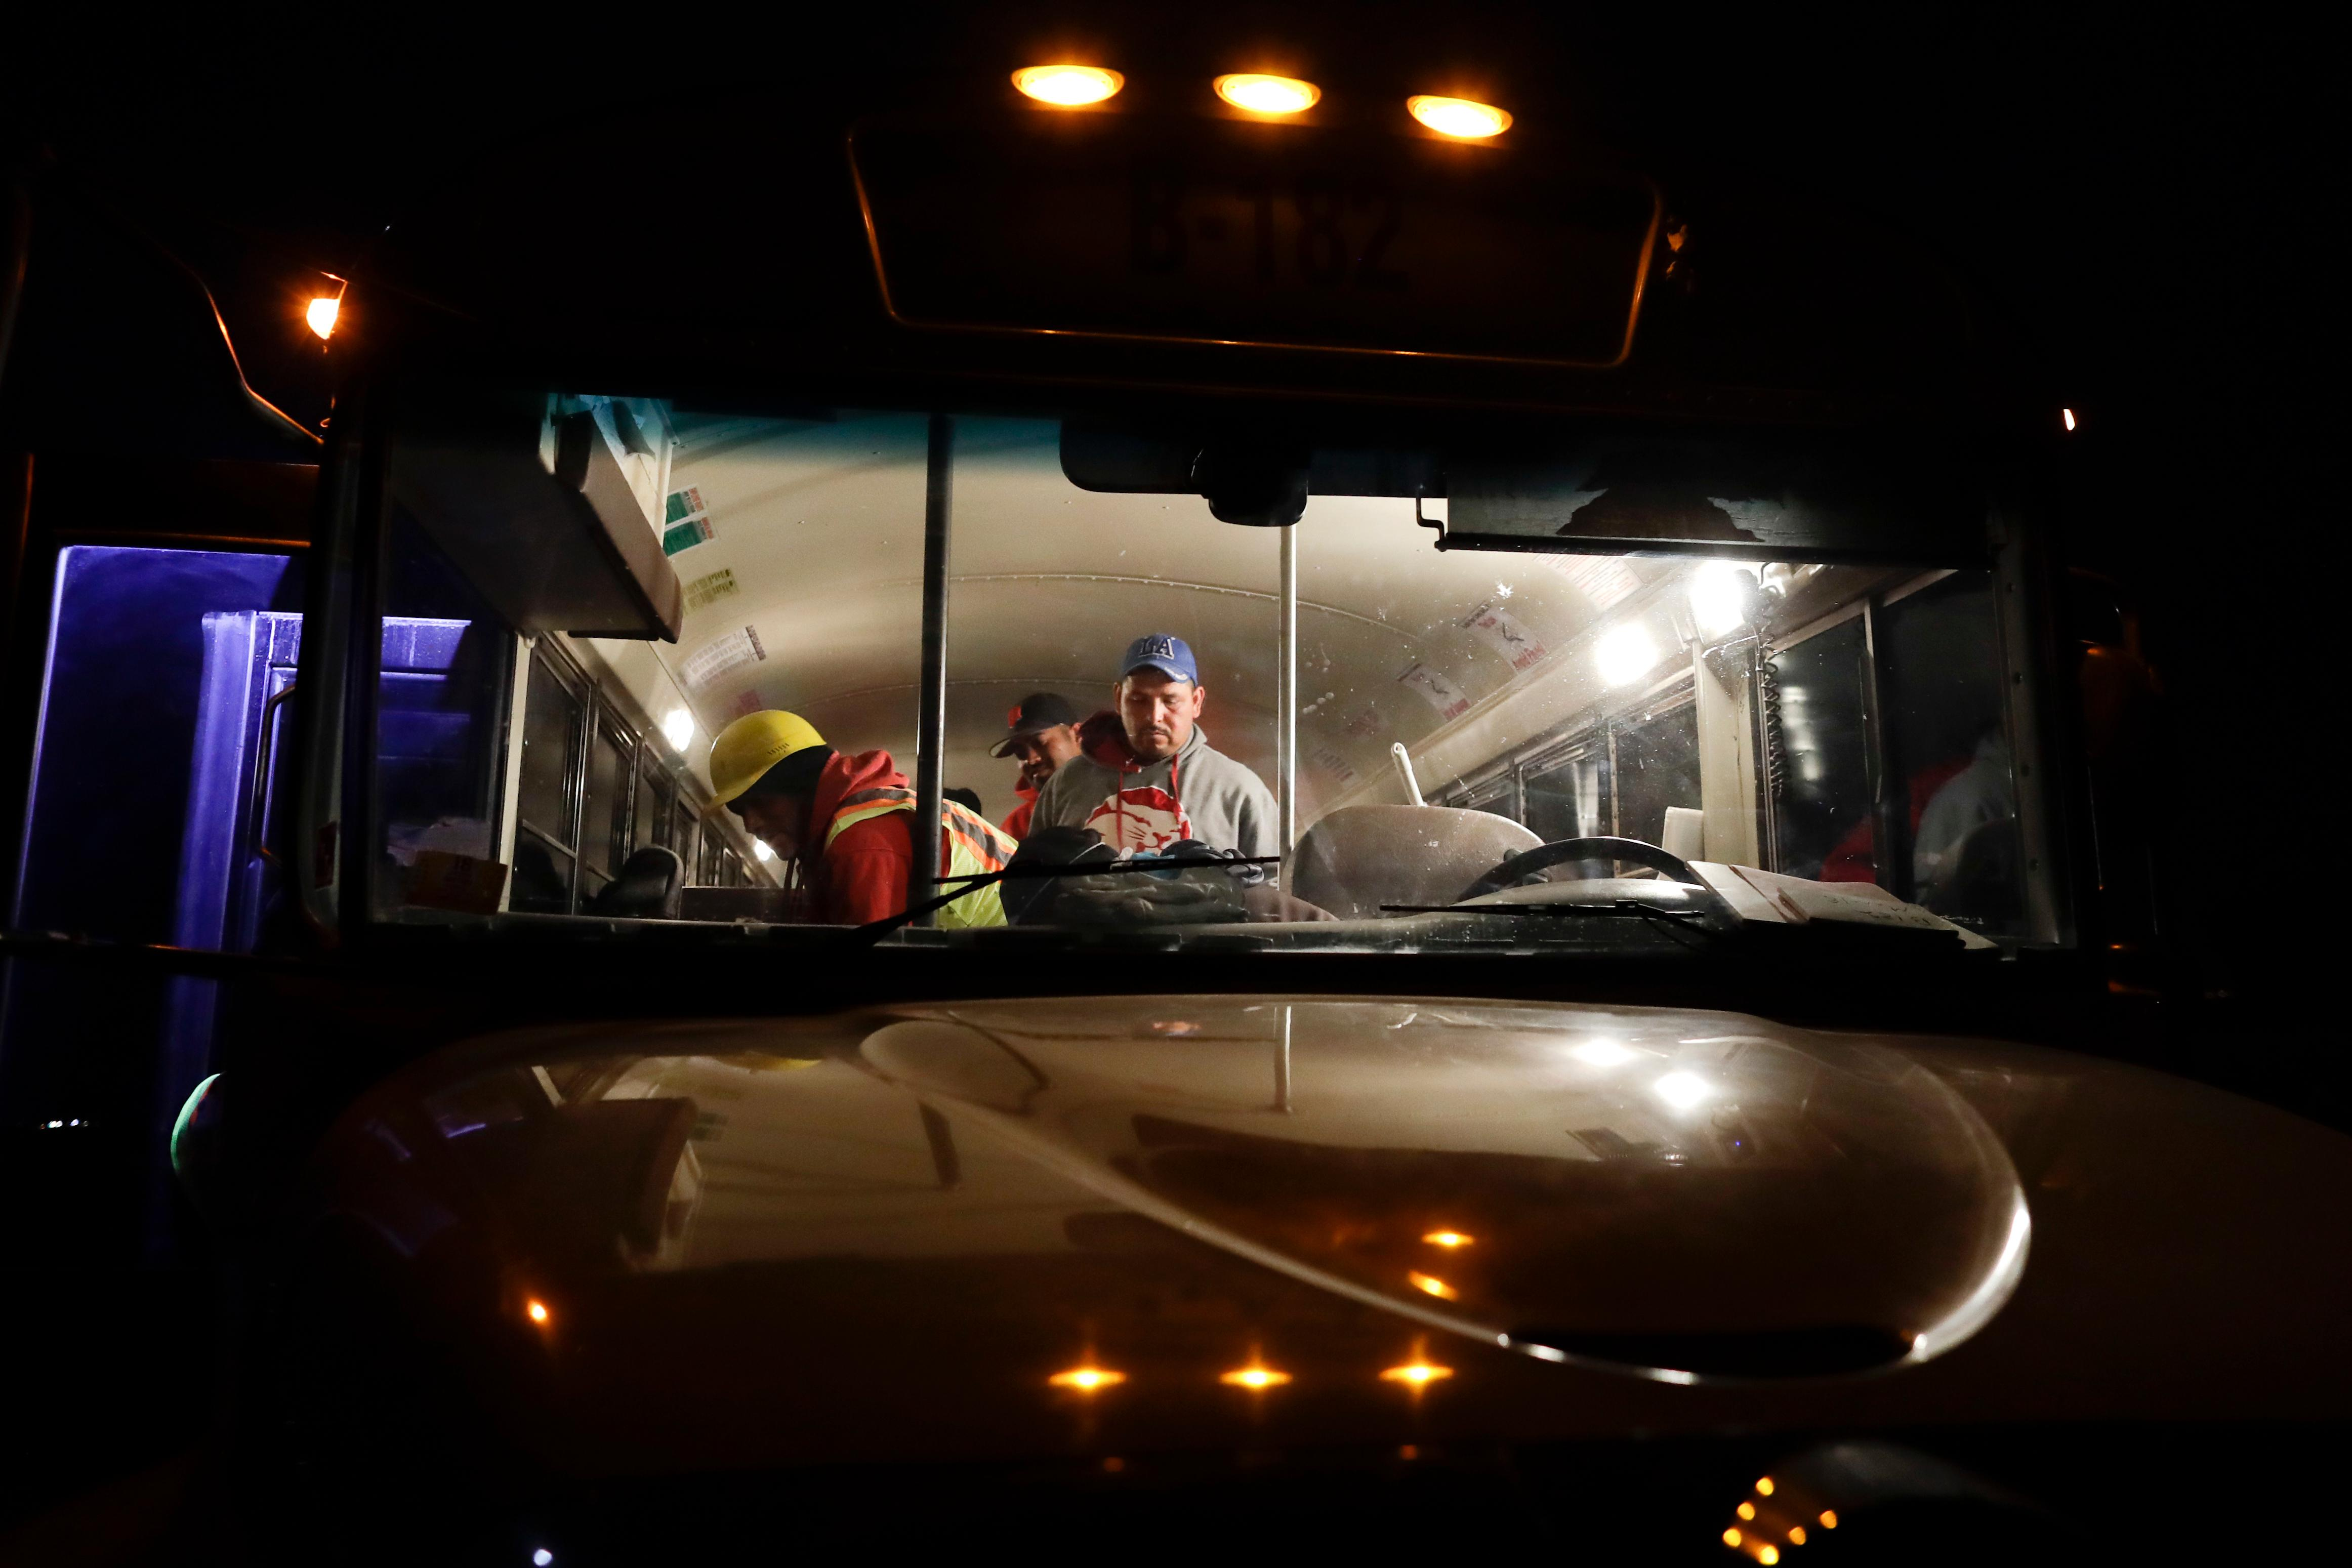 In this March 6, 2018 picture, farmworker Santiago Martinez, of Mexicali, Mexico, right, exits a bus as it arrives at a cabbage field ready for harvest, before dawn outside of Calexico, Calif. As Trump visits the border for the first time as president on Tuesday, the harvest is a reminder of how little has changed despite heated rhetoric in Washington. (AP Photo/Gregory Bull)